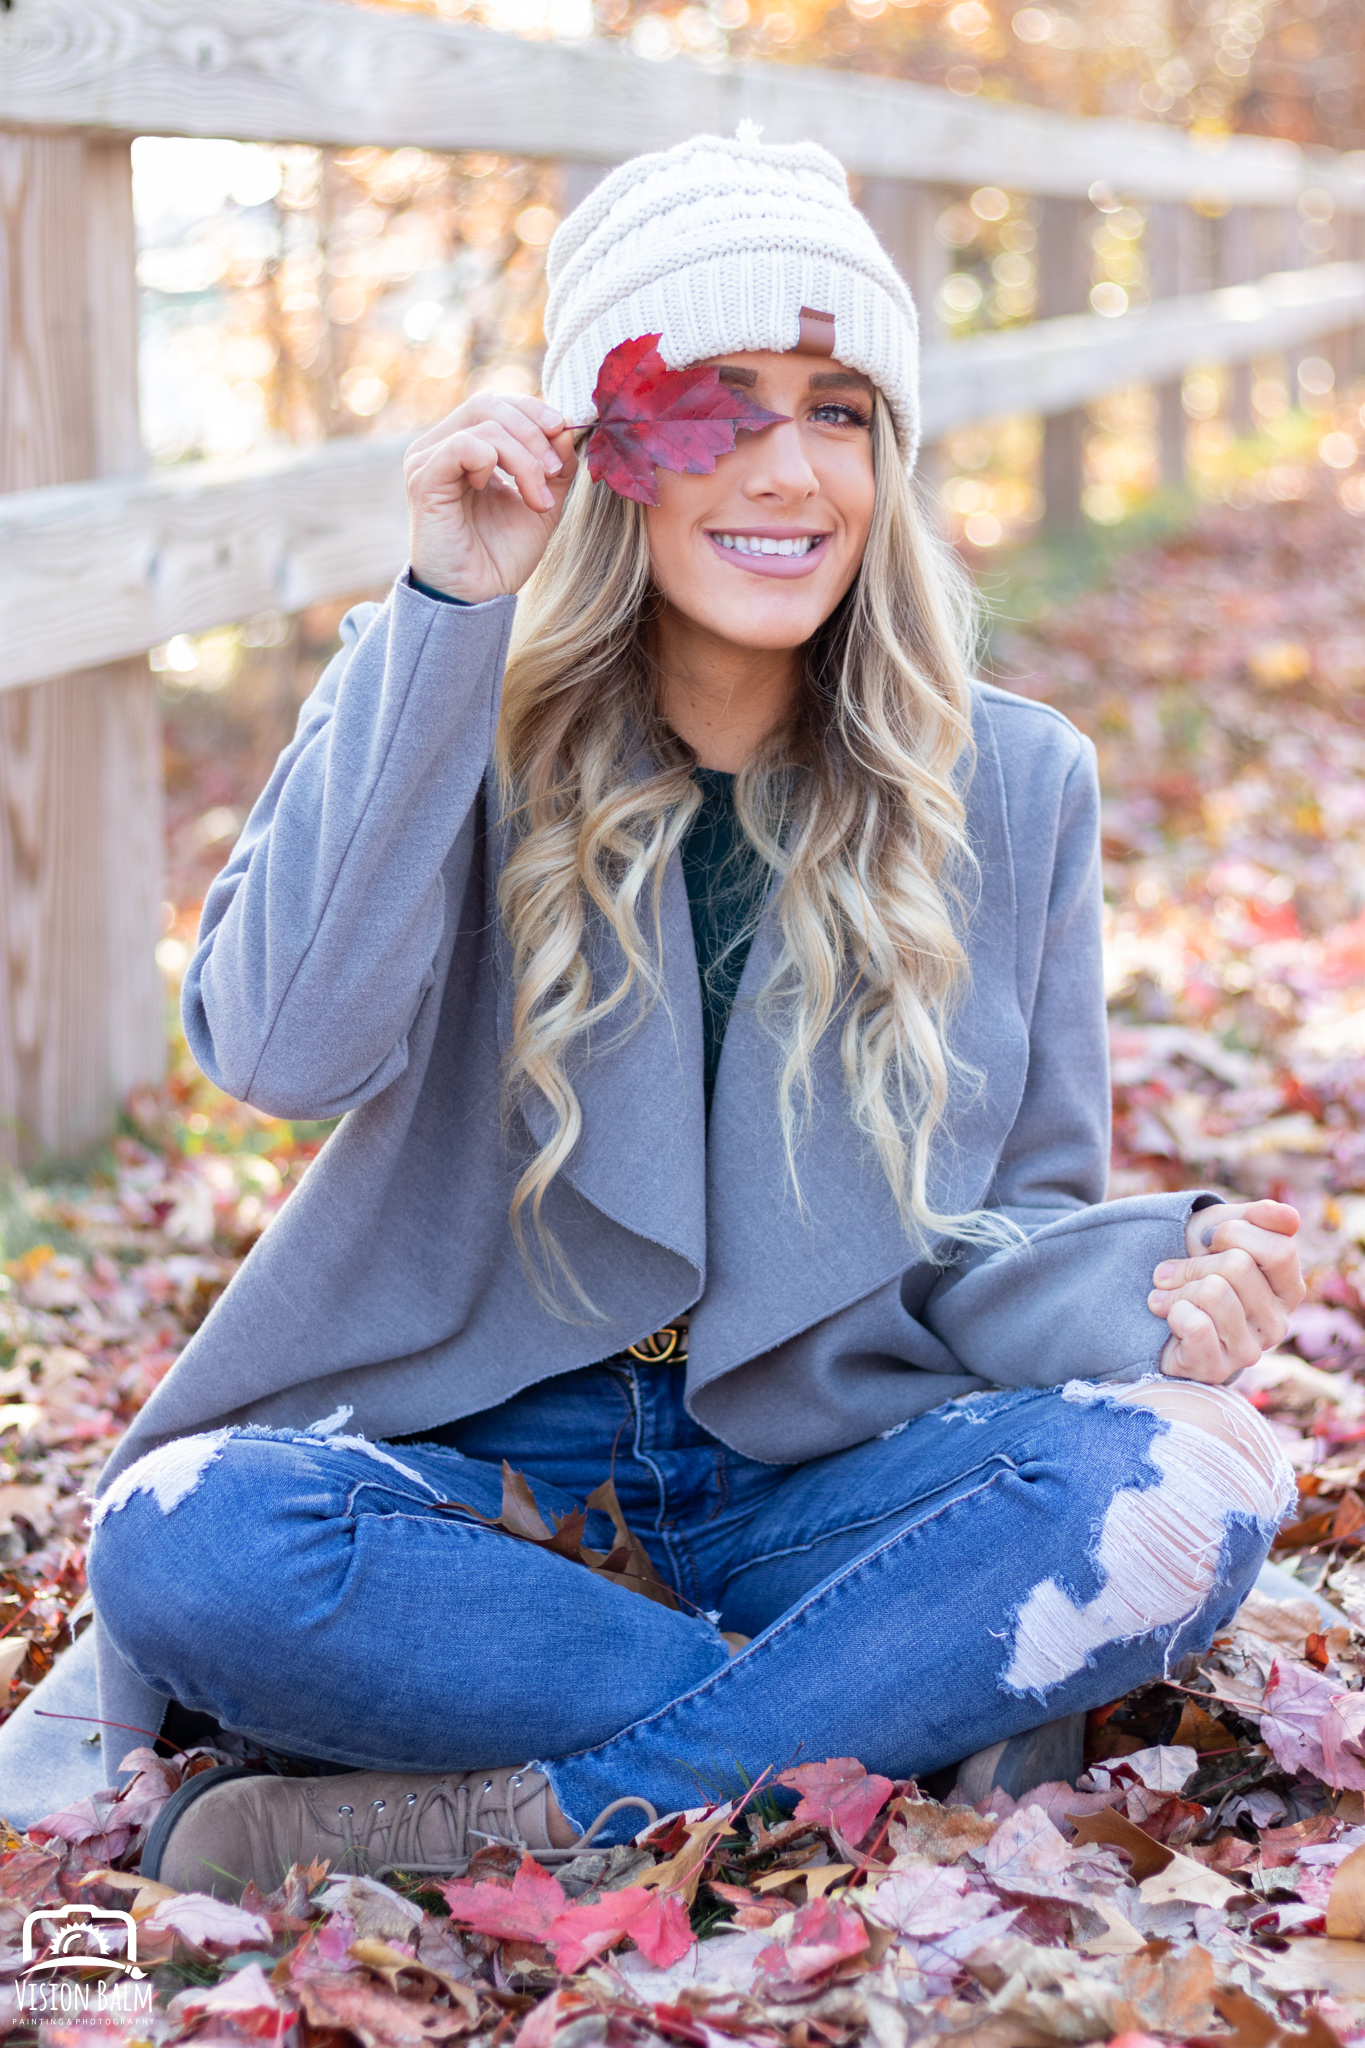 Professional fall portrait photography of model wearing a knit hat holding a red leaf photographed by Vision Balm in Charleston, SC.